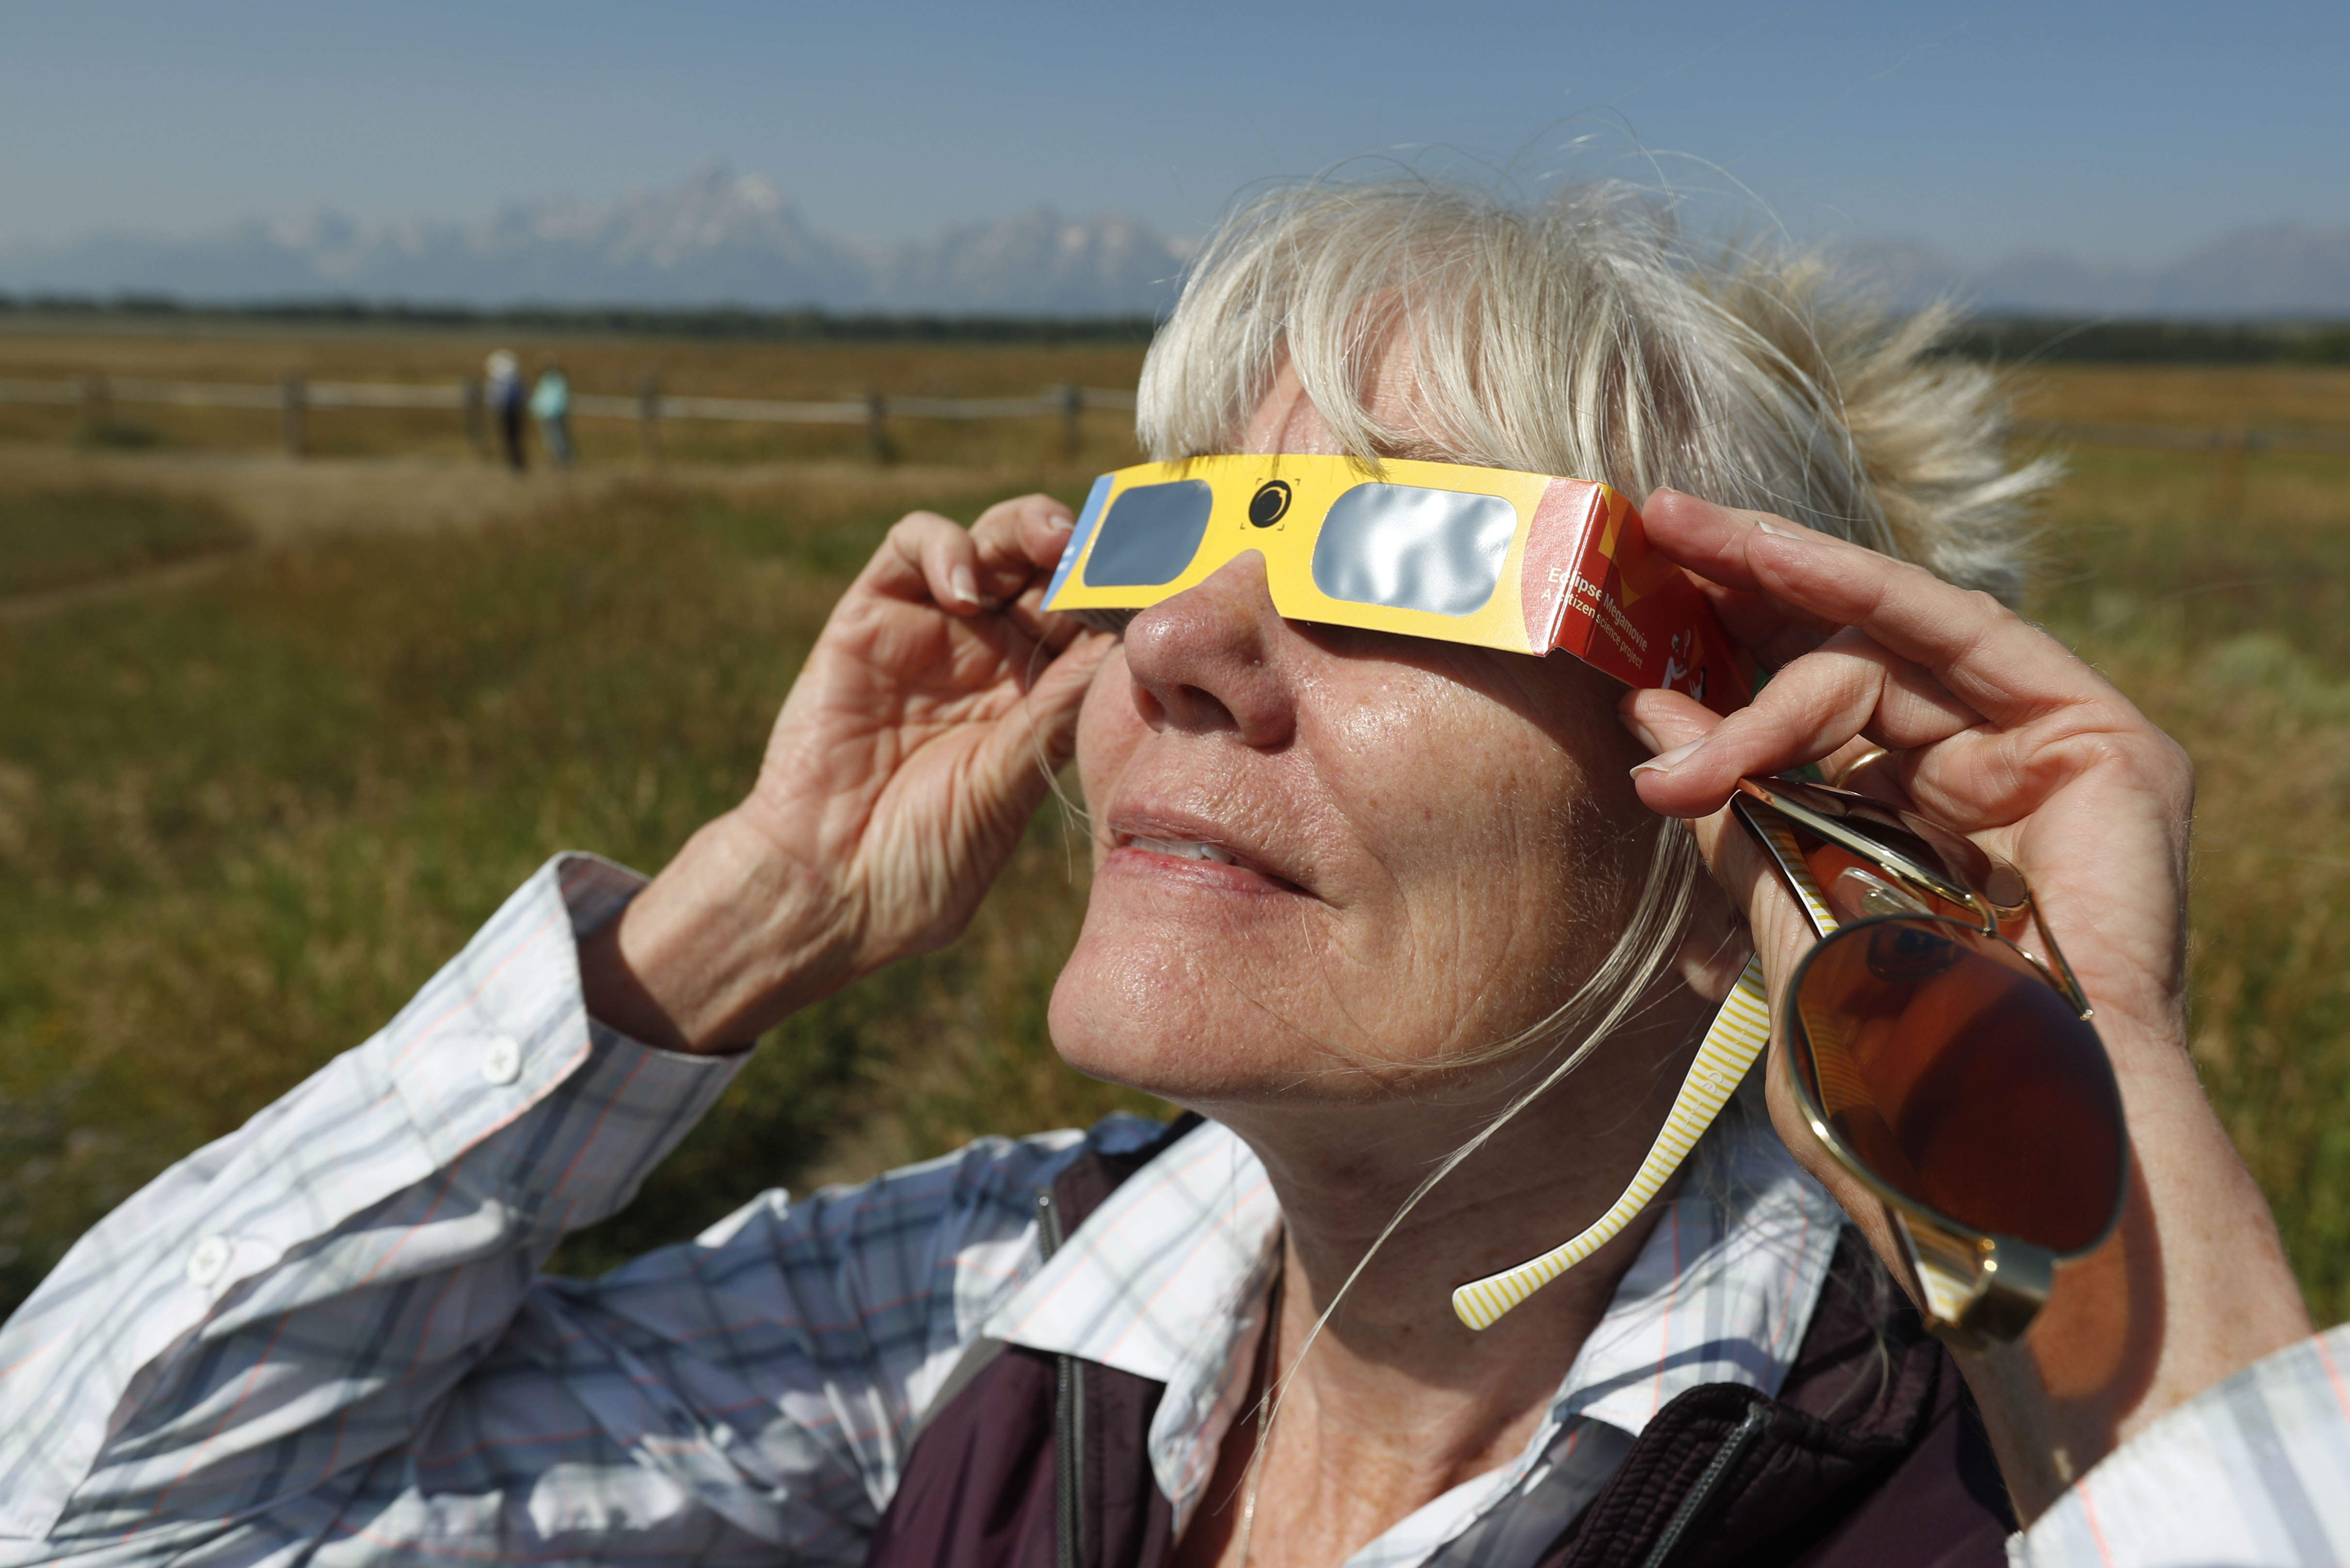 These glasses are one of the few ways to watch a solar eclipse safely.